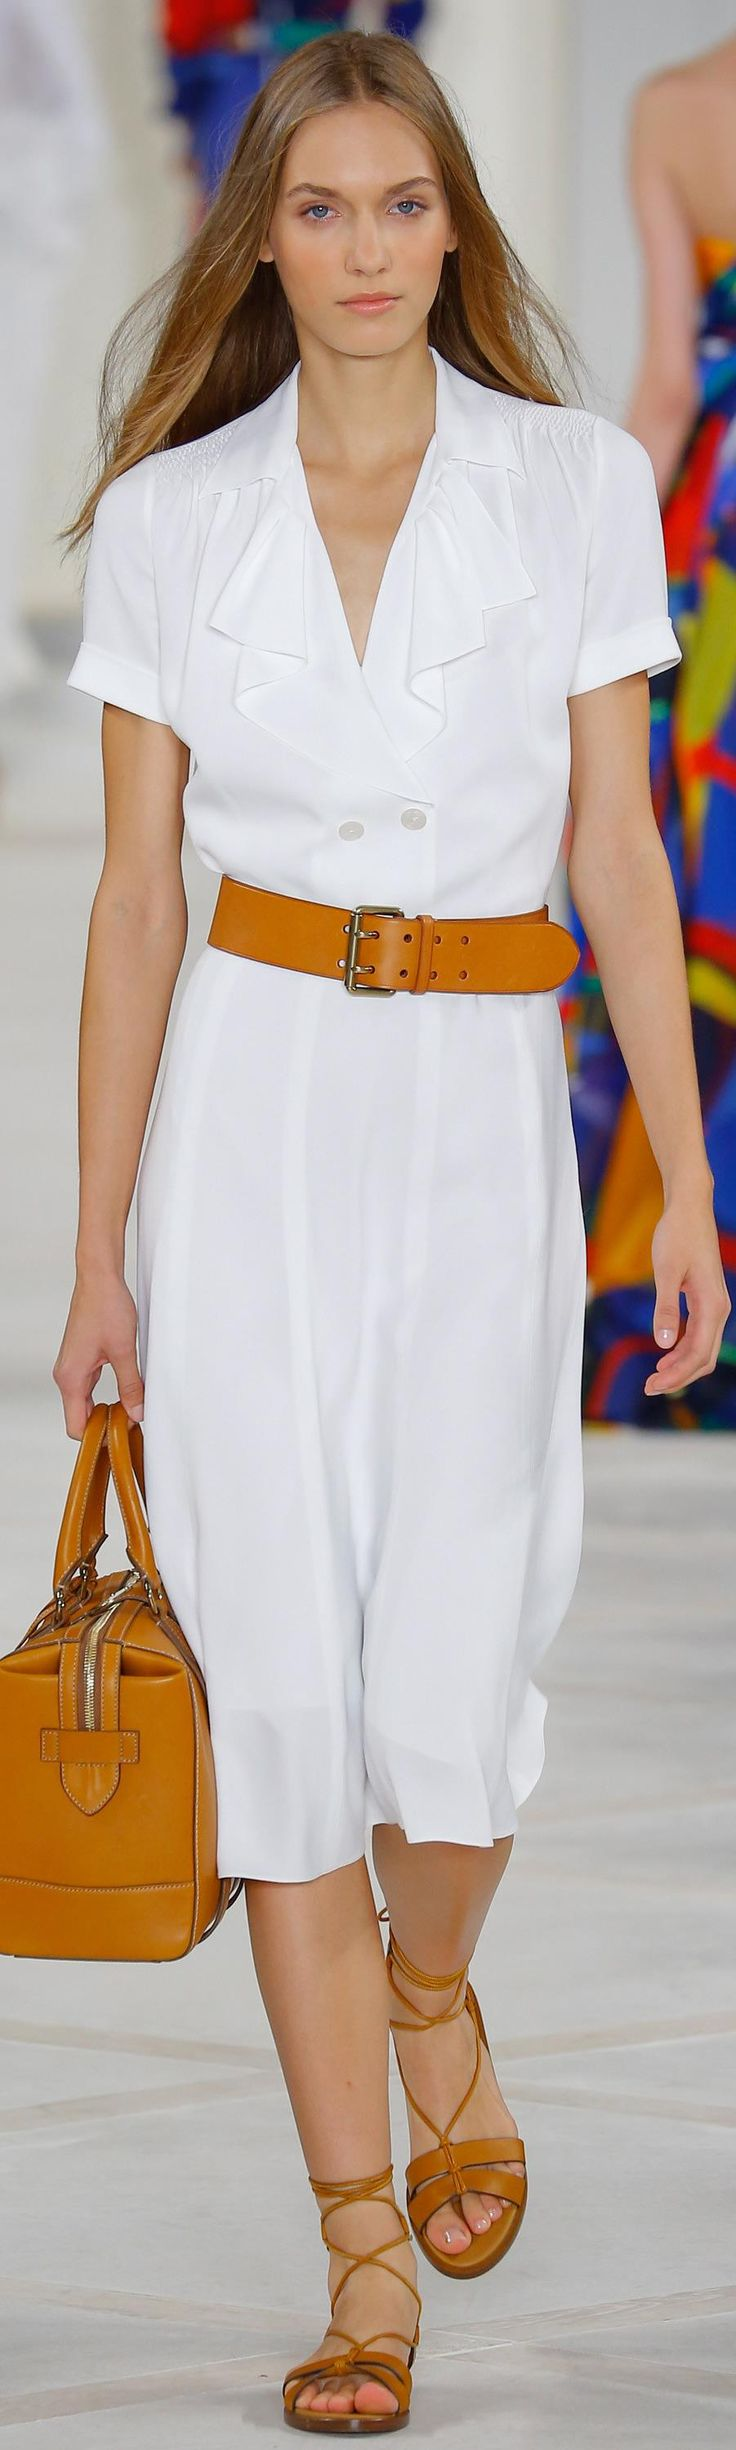 TD ❤️ Ralph Lauren, Spring 2016 Ready-To-Wear                                                                                                                                                      More